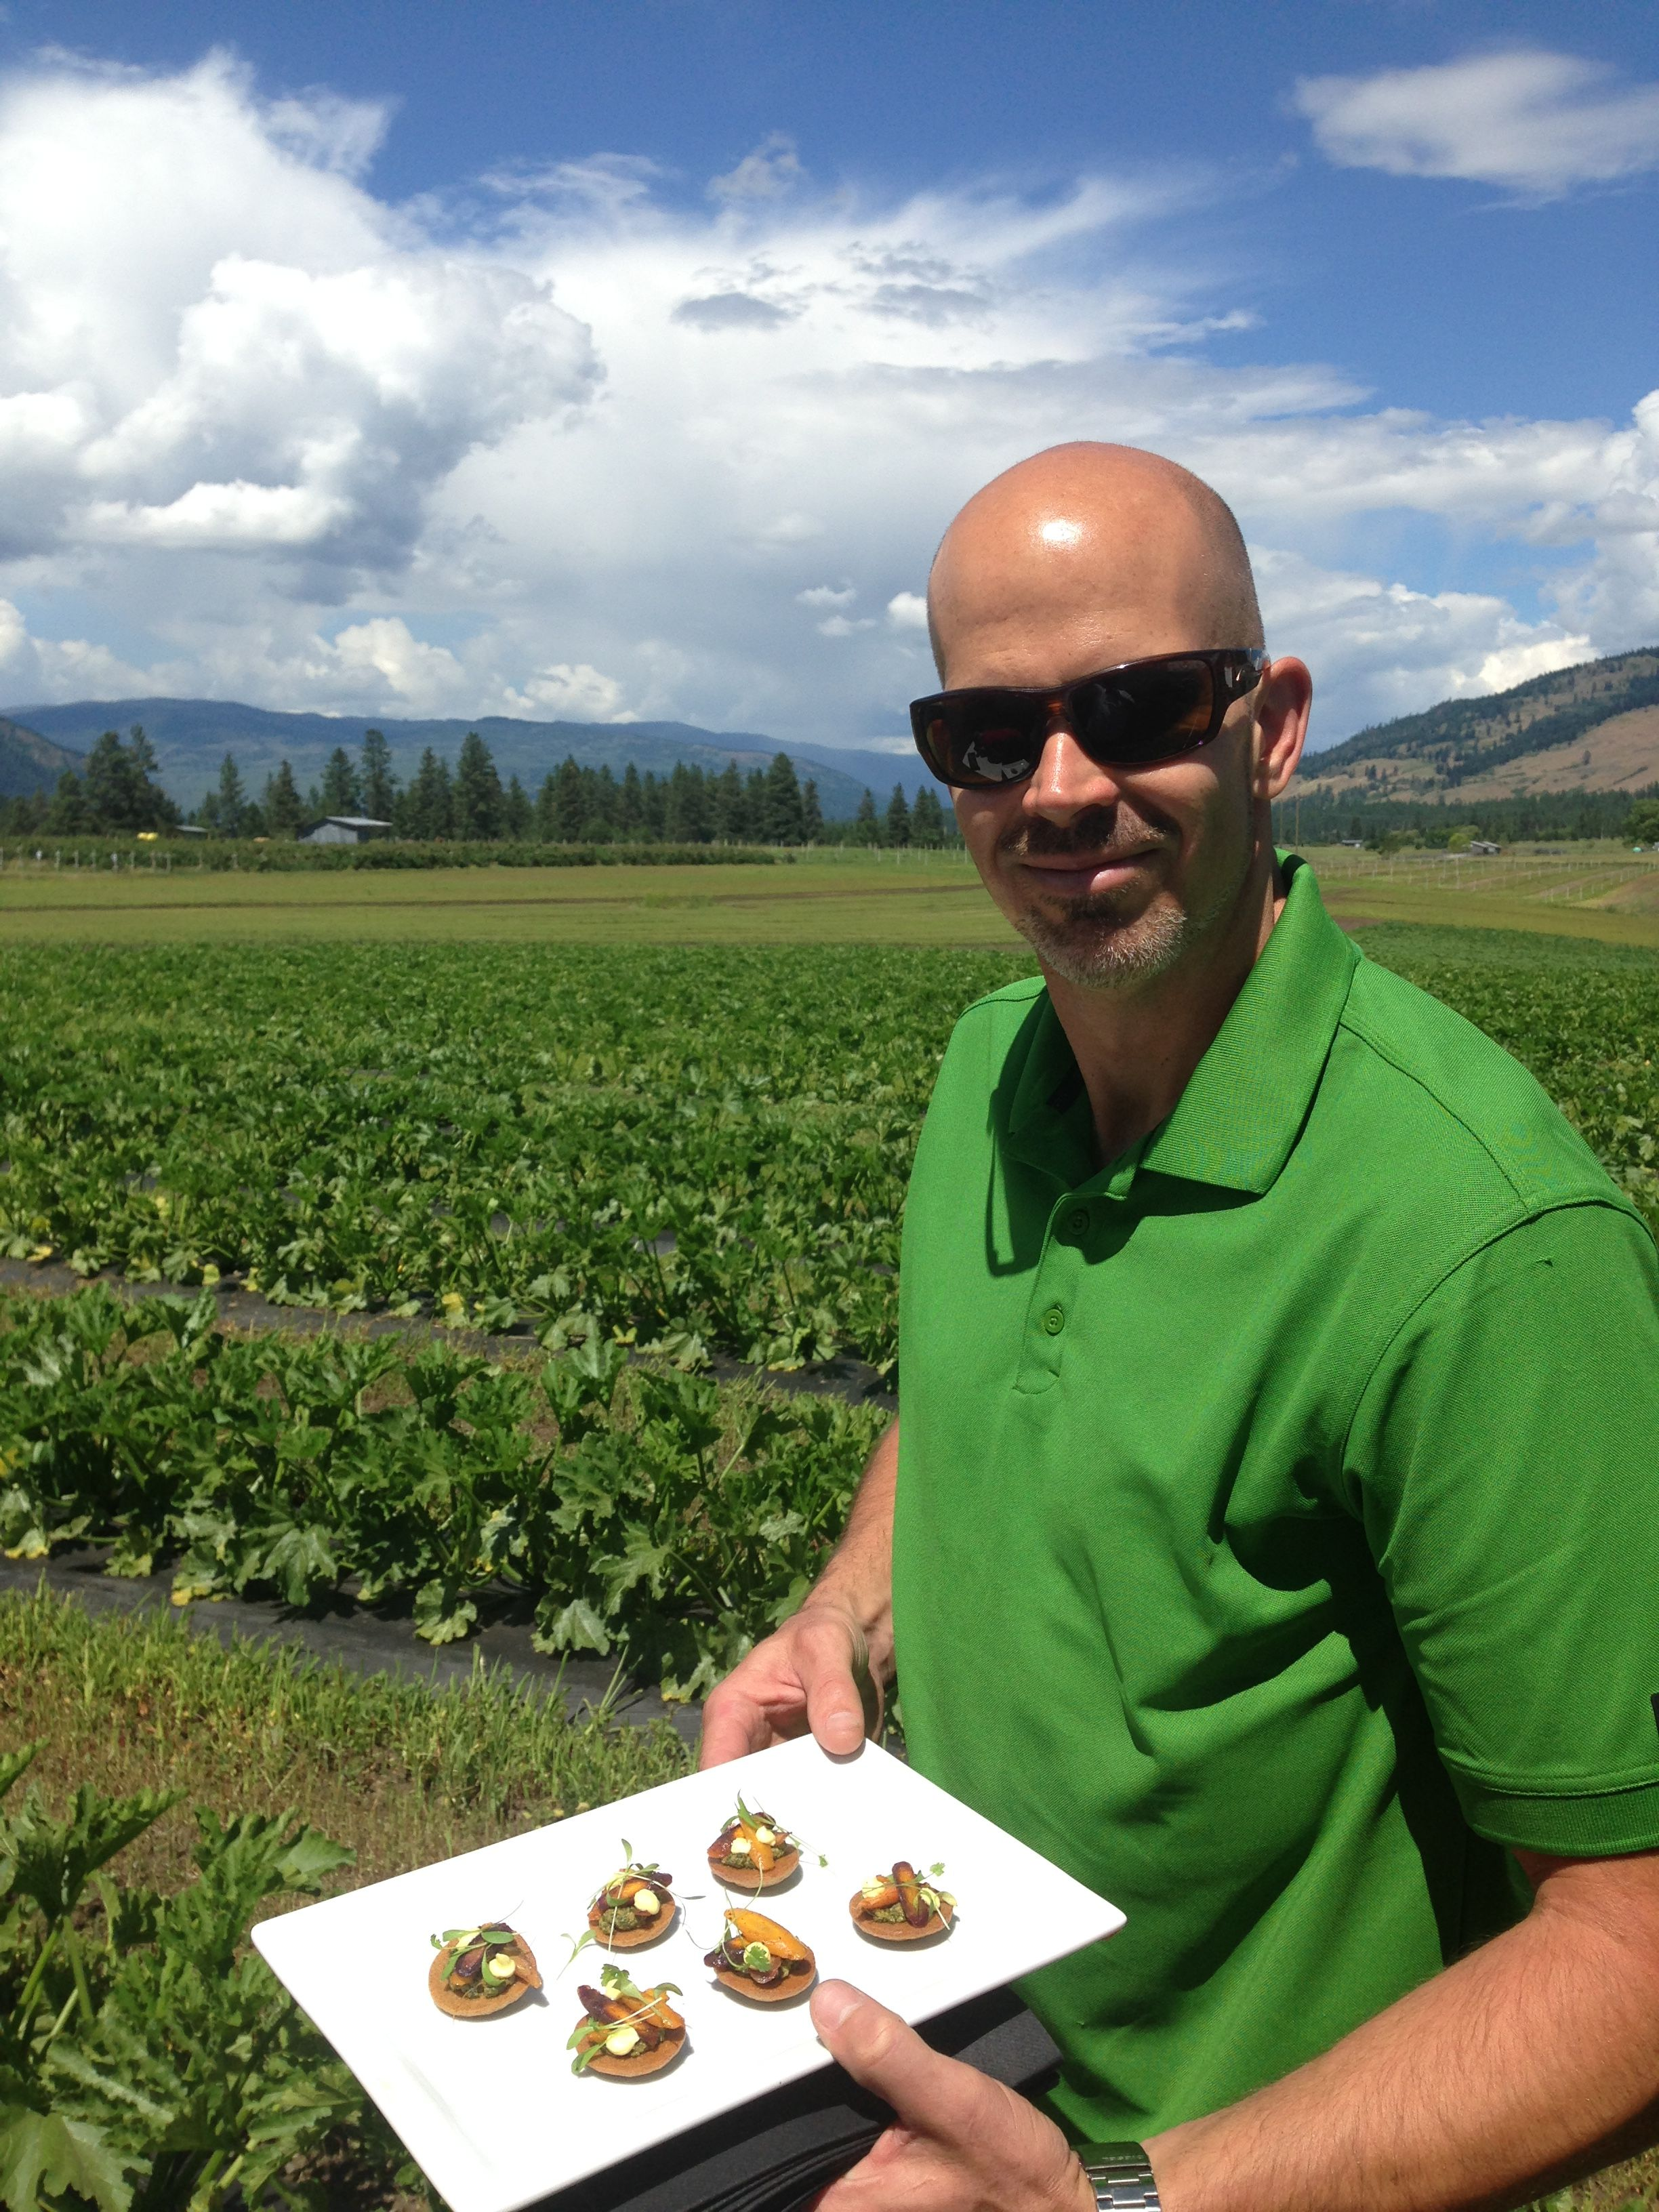 Pin by Brent Durec on SYSCO kelowna offsite events and